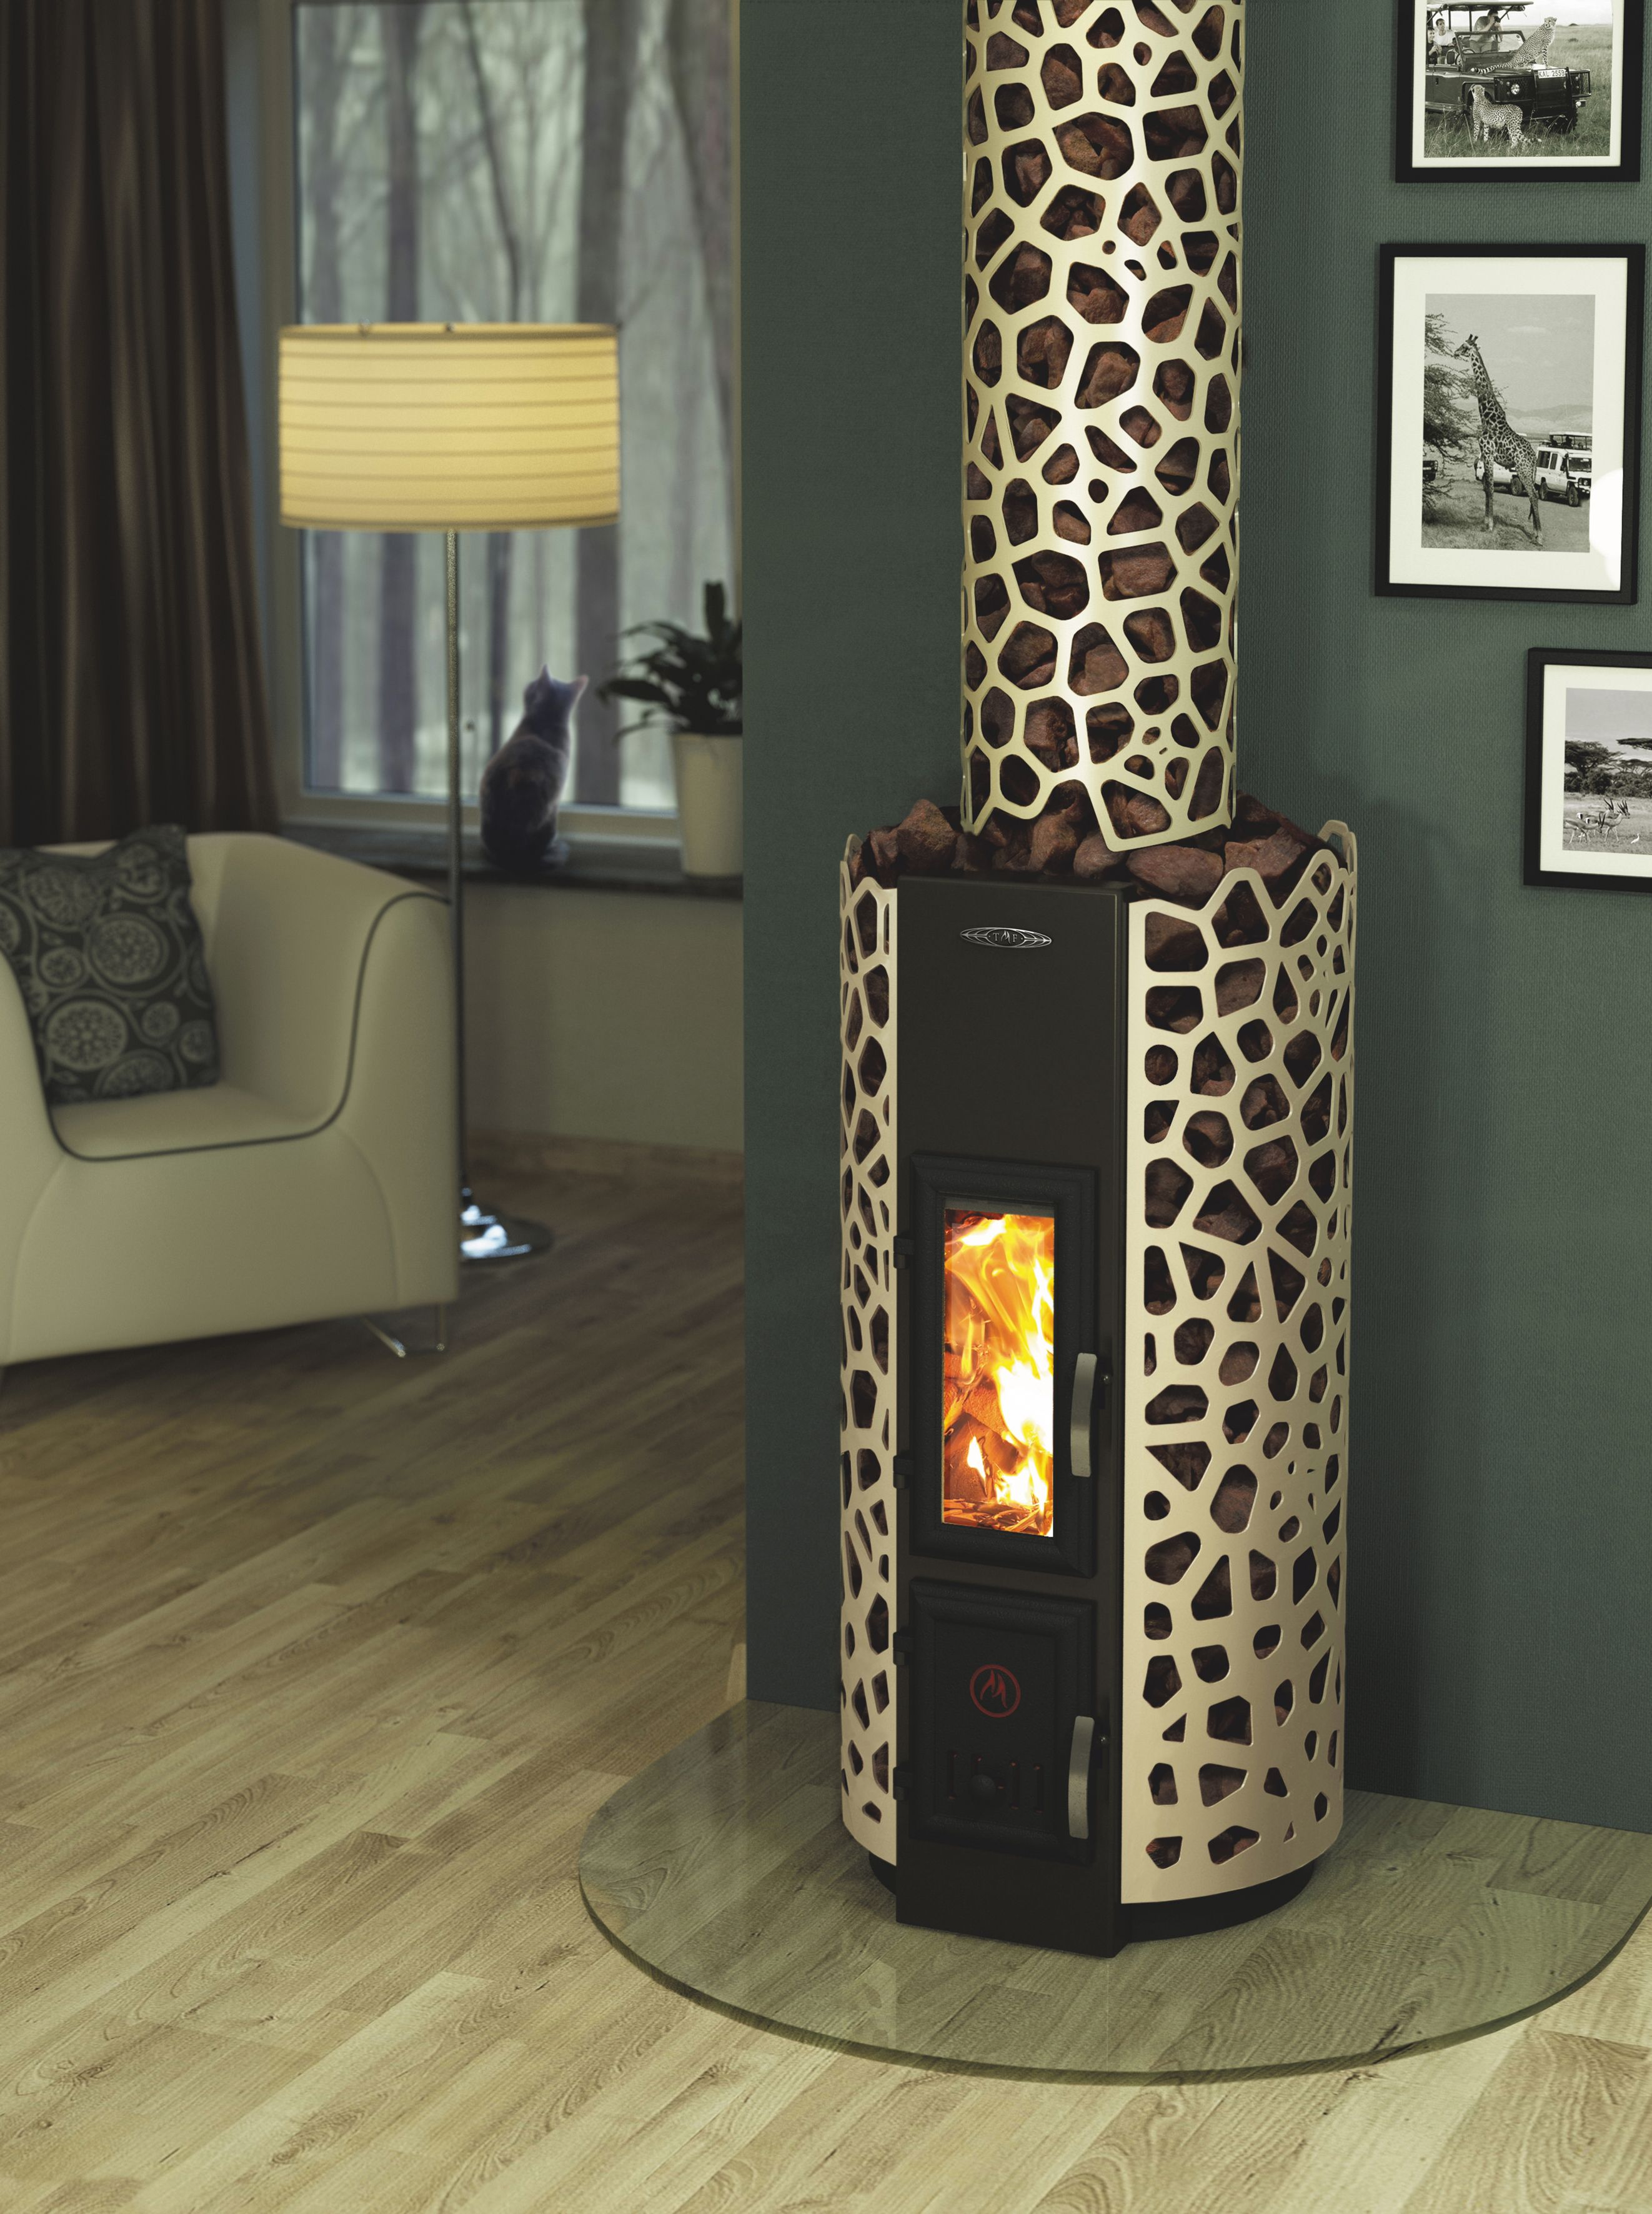 SAFARI Wood burning heating fireplace stove laded with stones